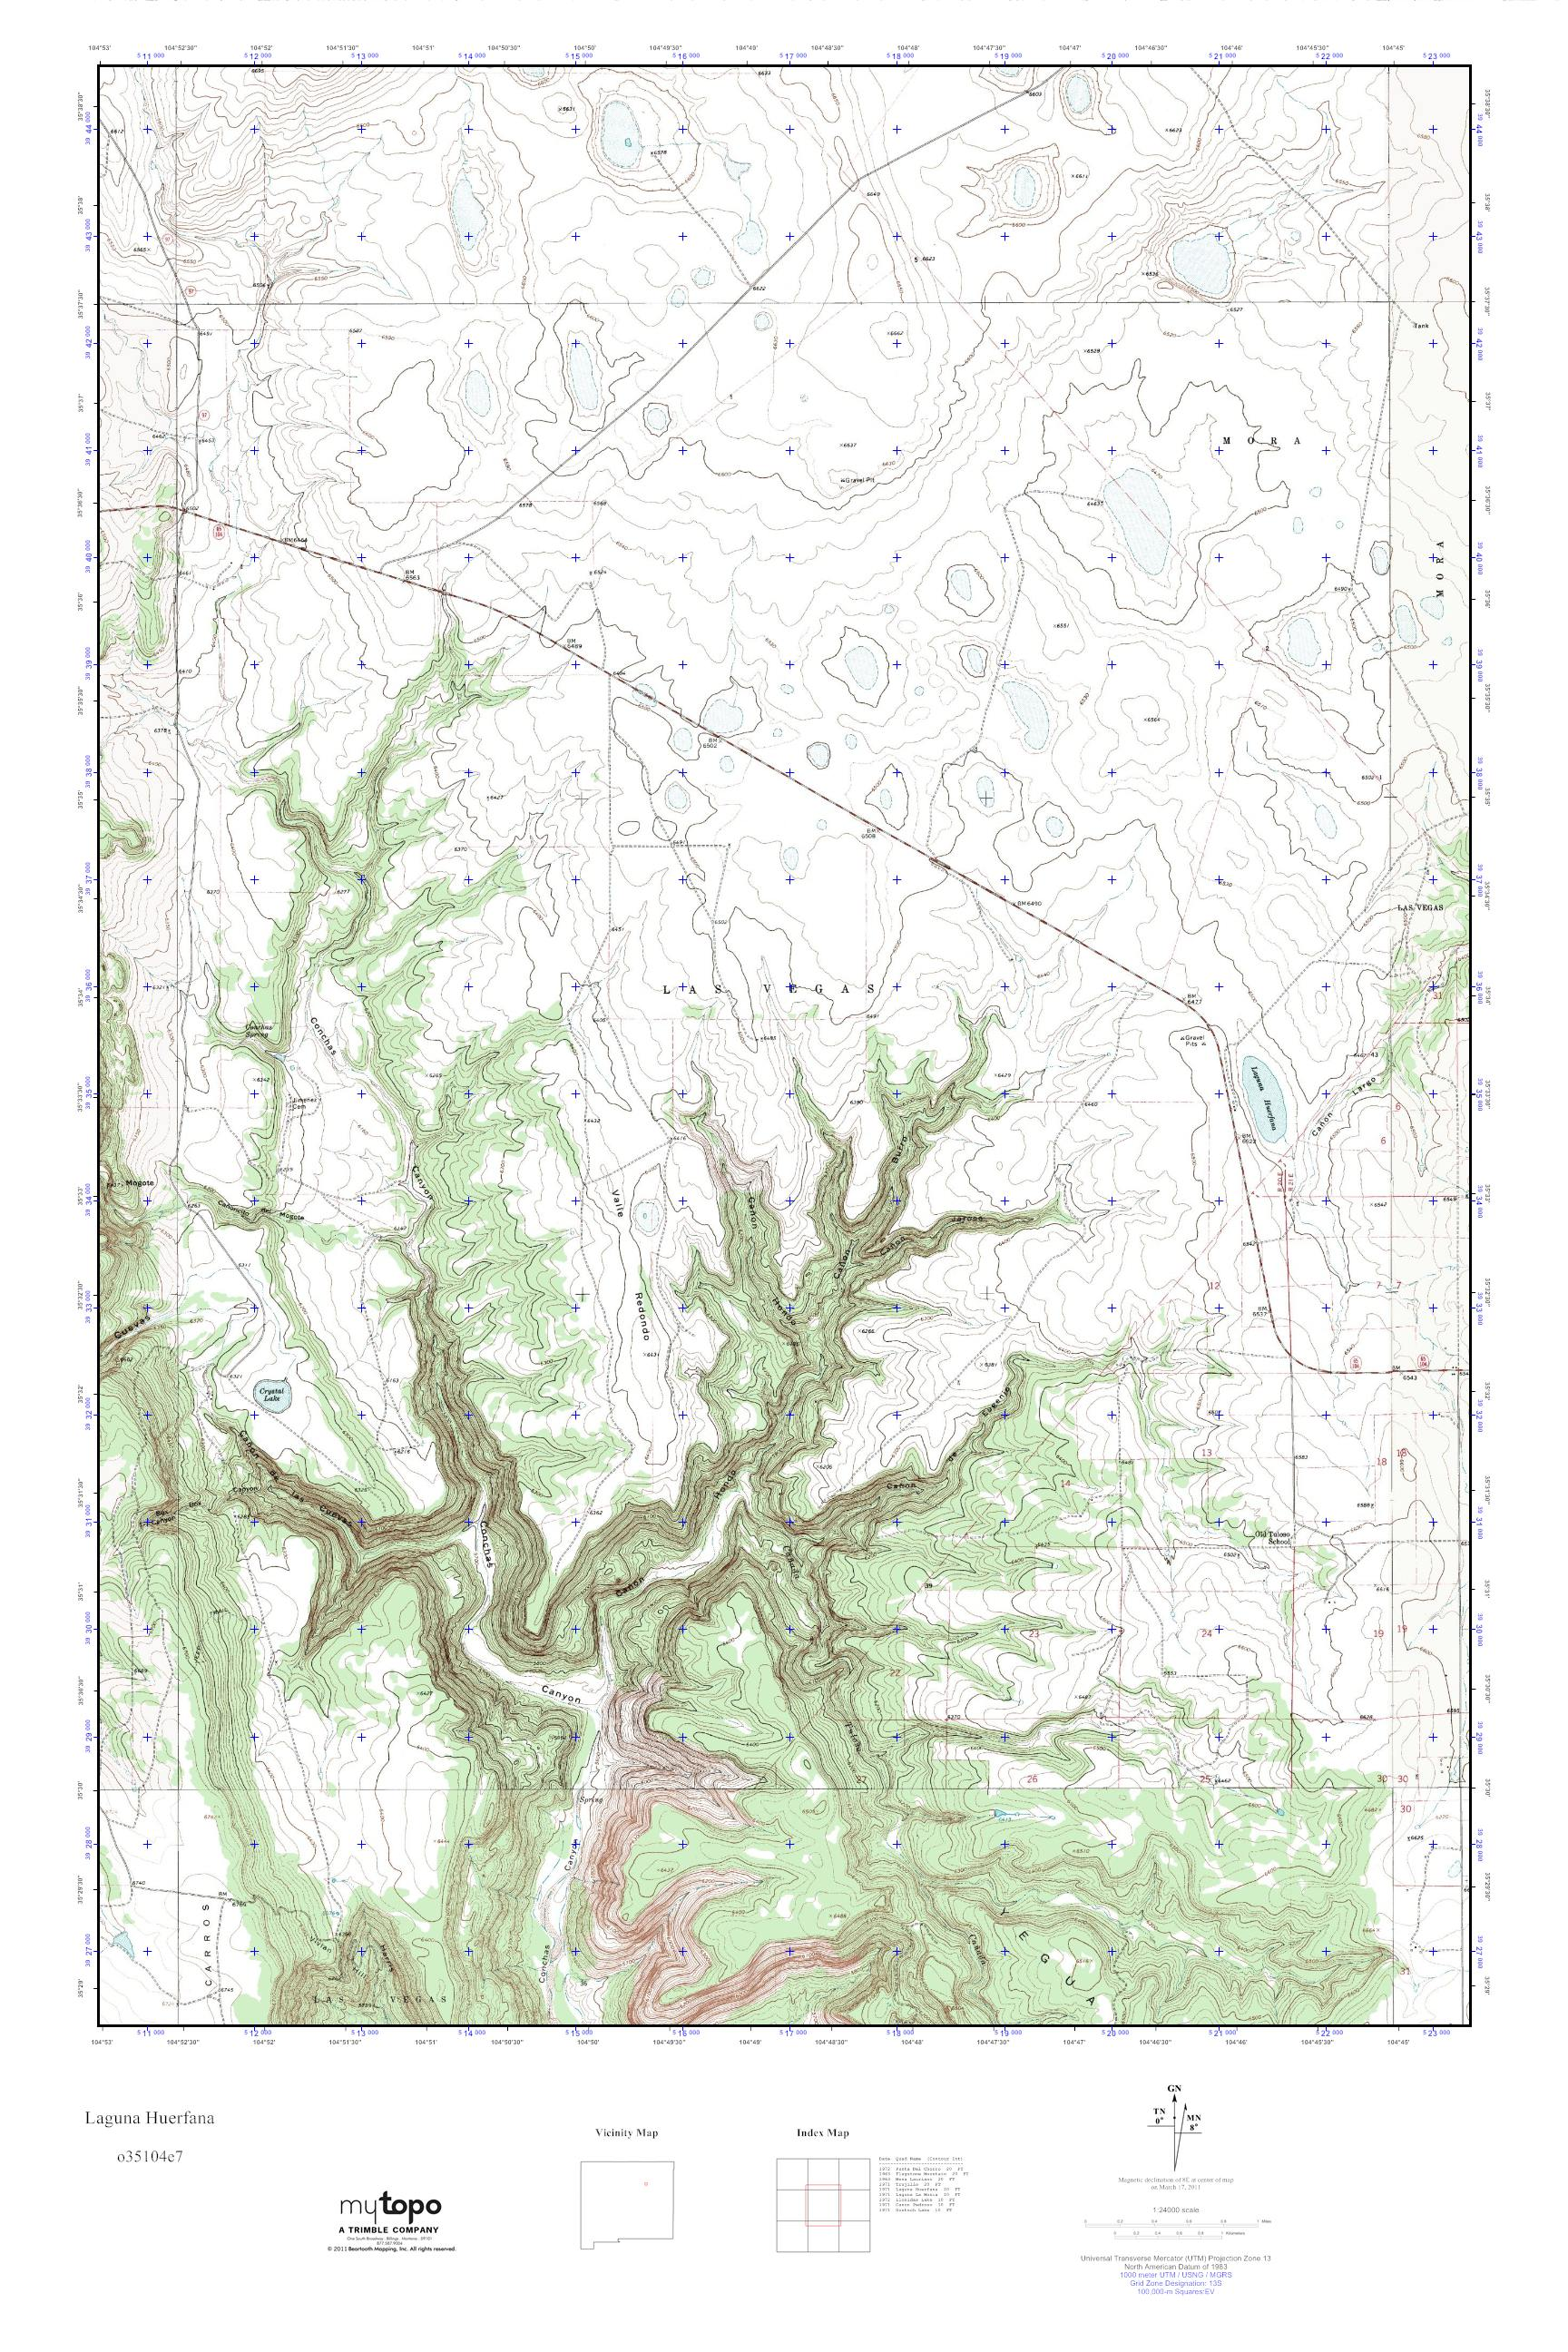 MyTopo Laguna Huerfana New Mexico USGS Quad Topo Map